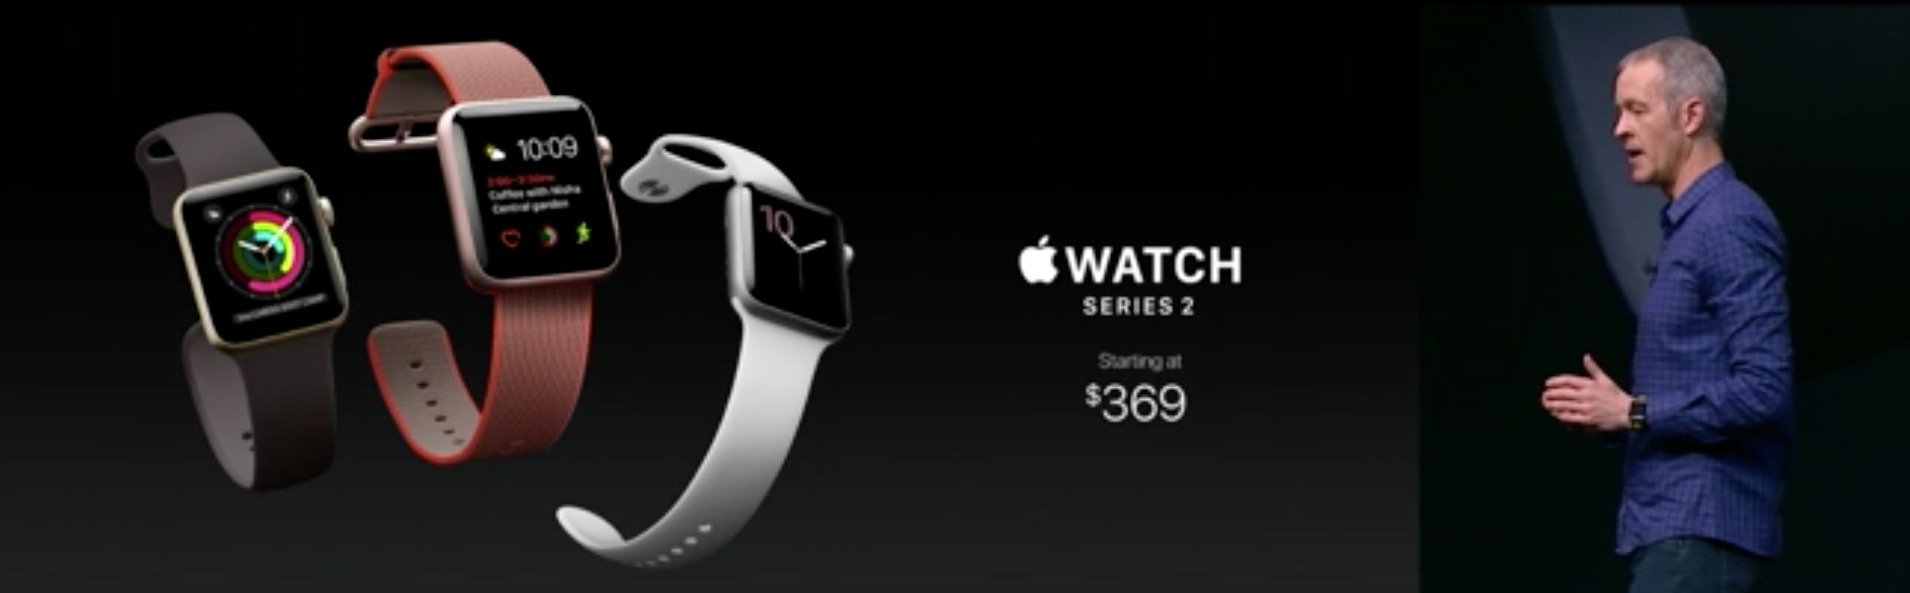 applewatch_series2-6